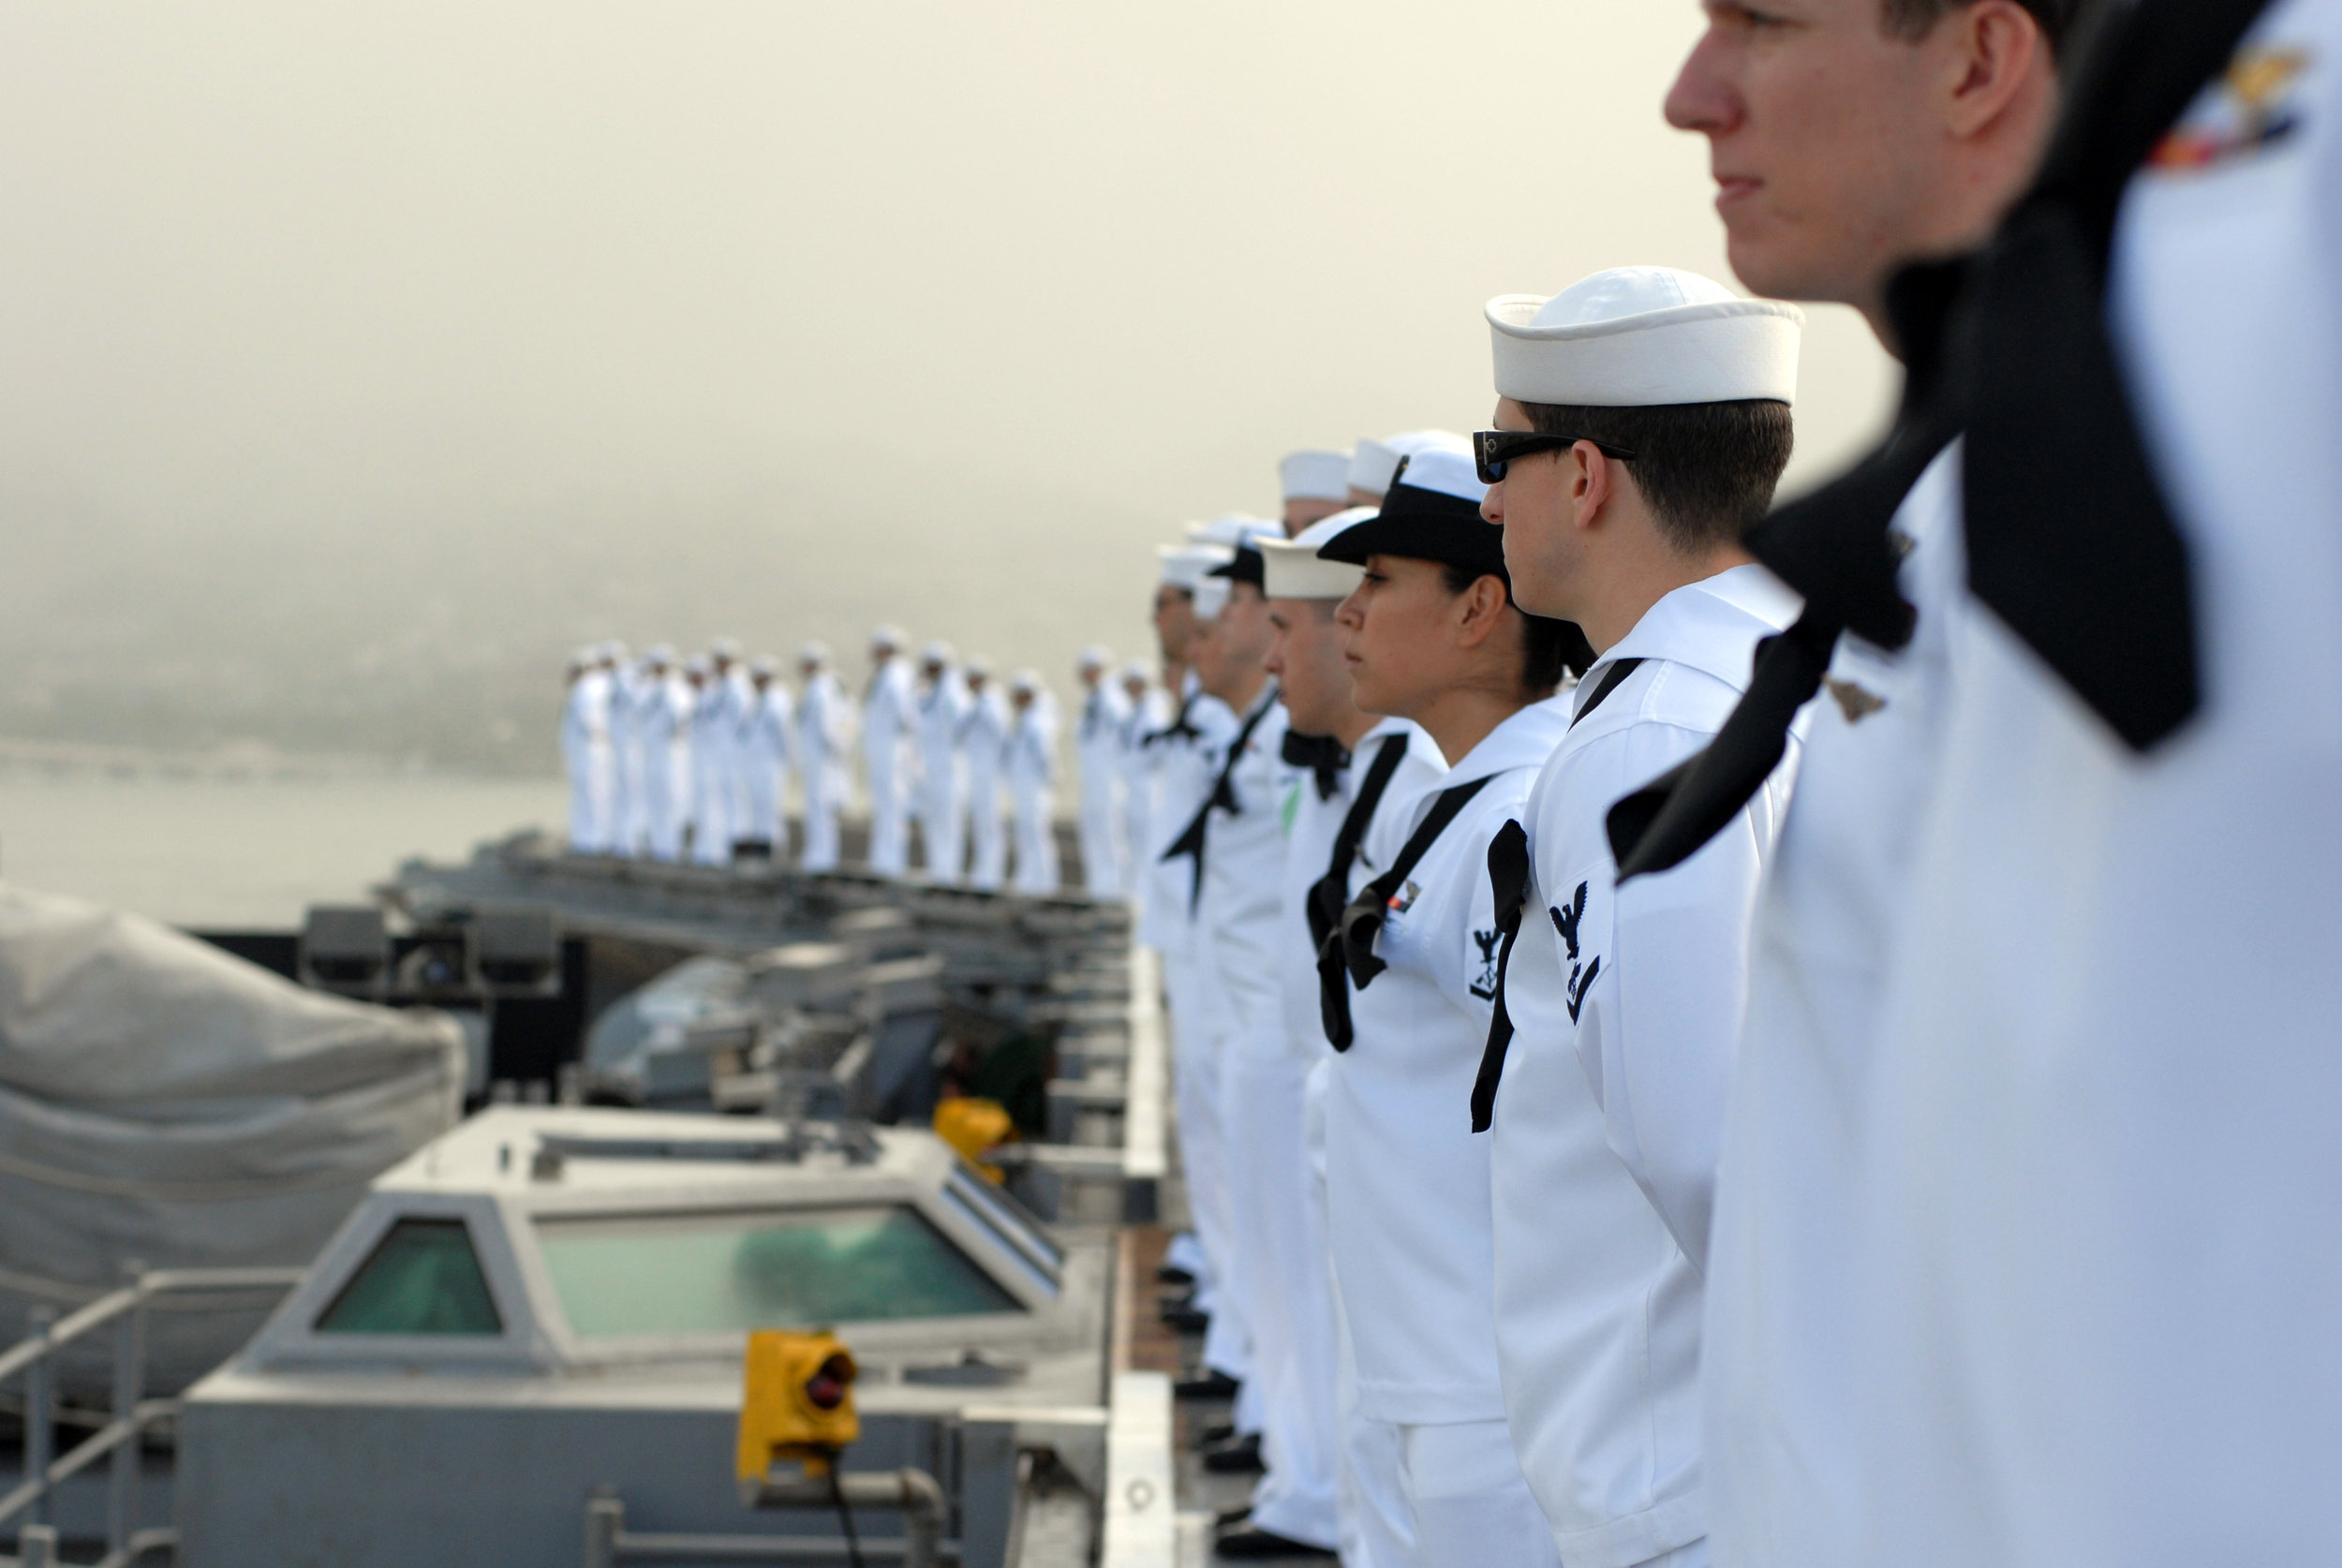 0420-0904-2711-4831_sailors_standing_around_the_deck_of_an_aircraft_carrier_o.jpg